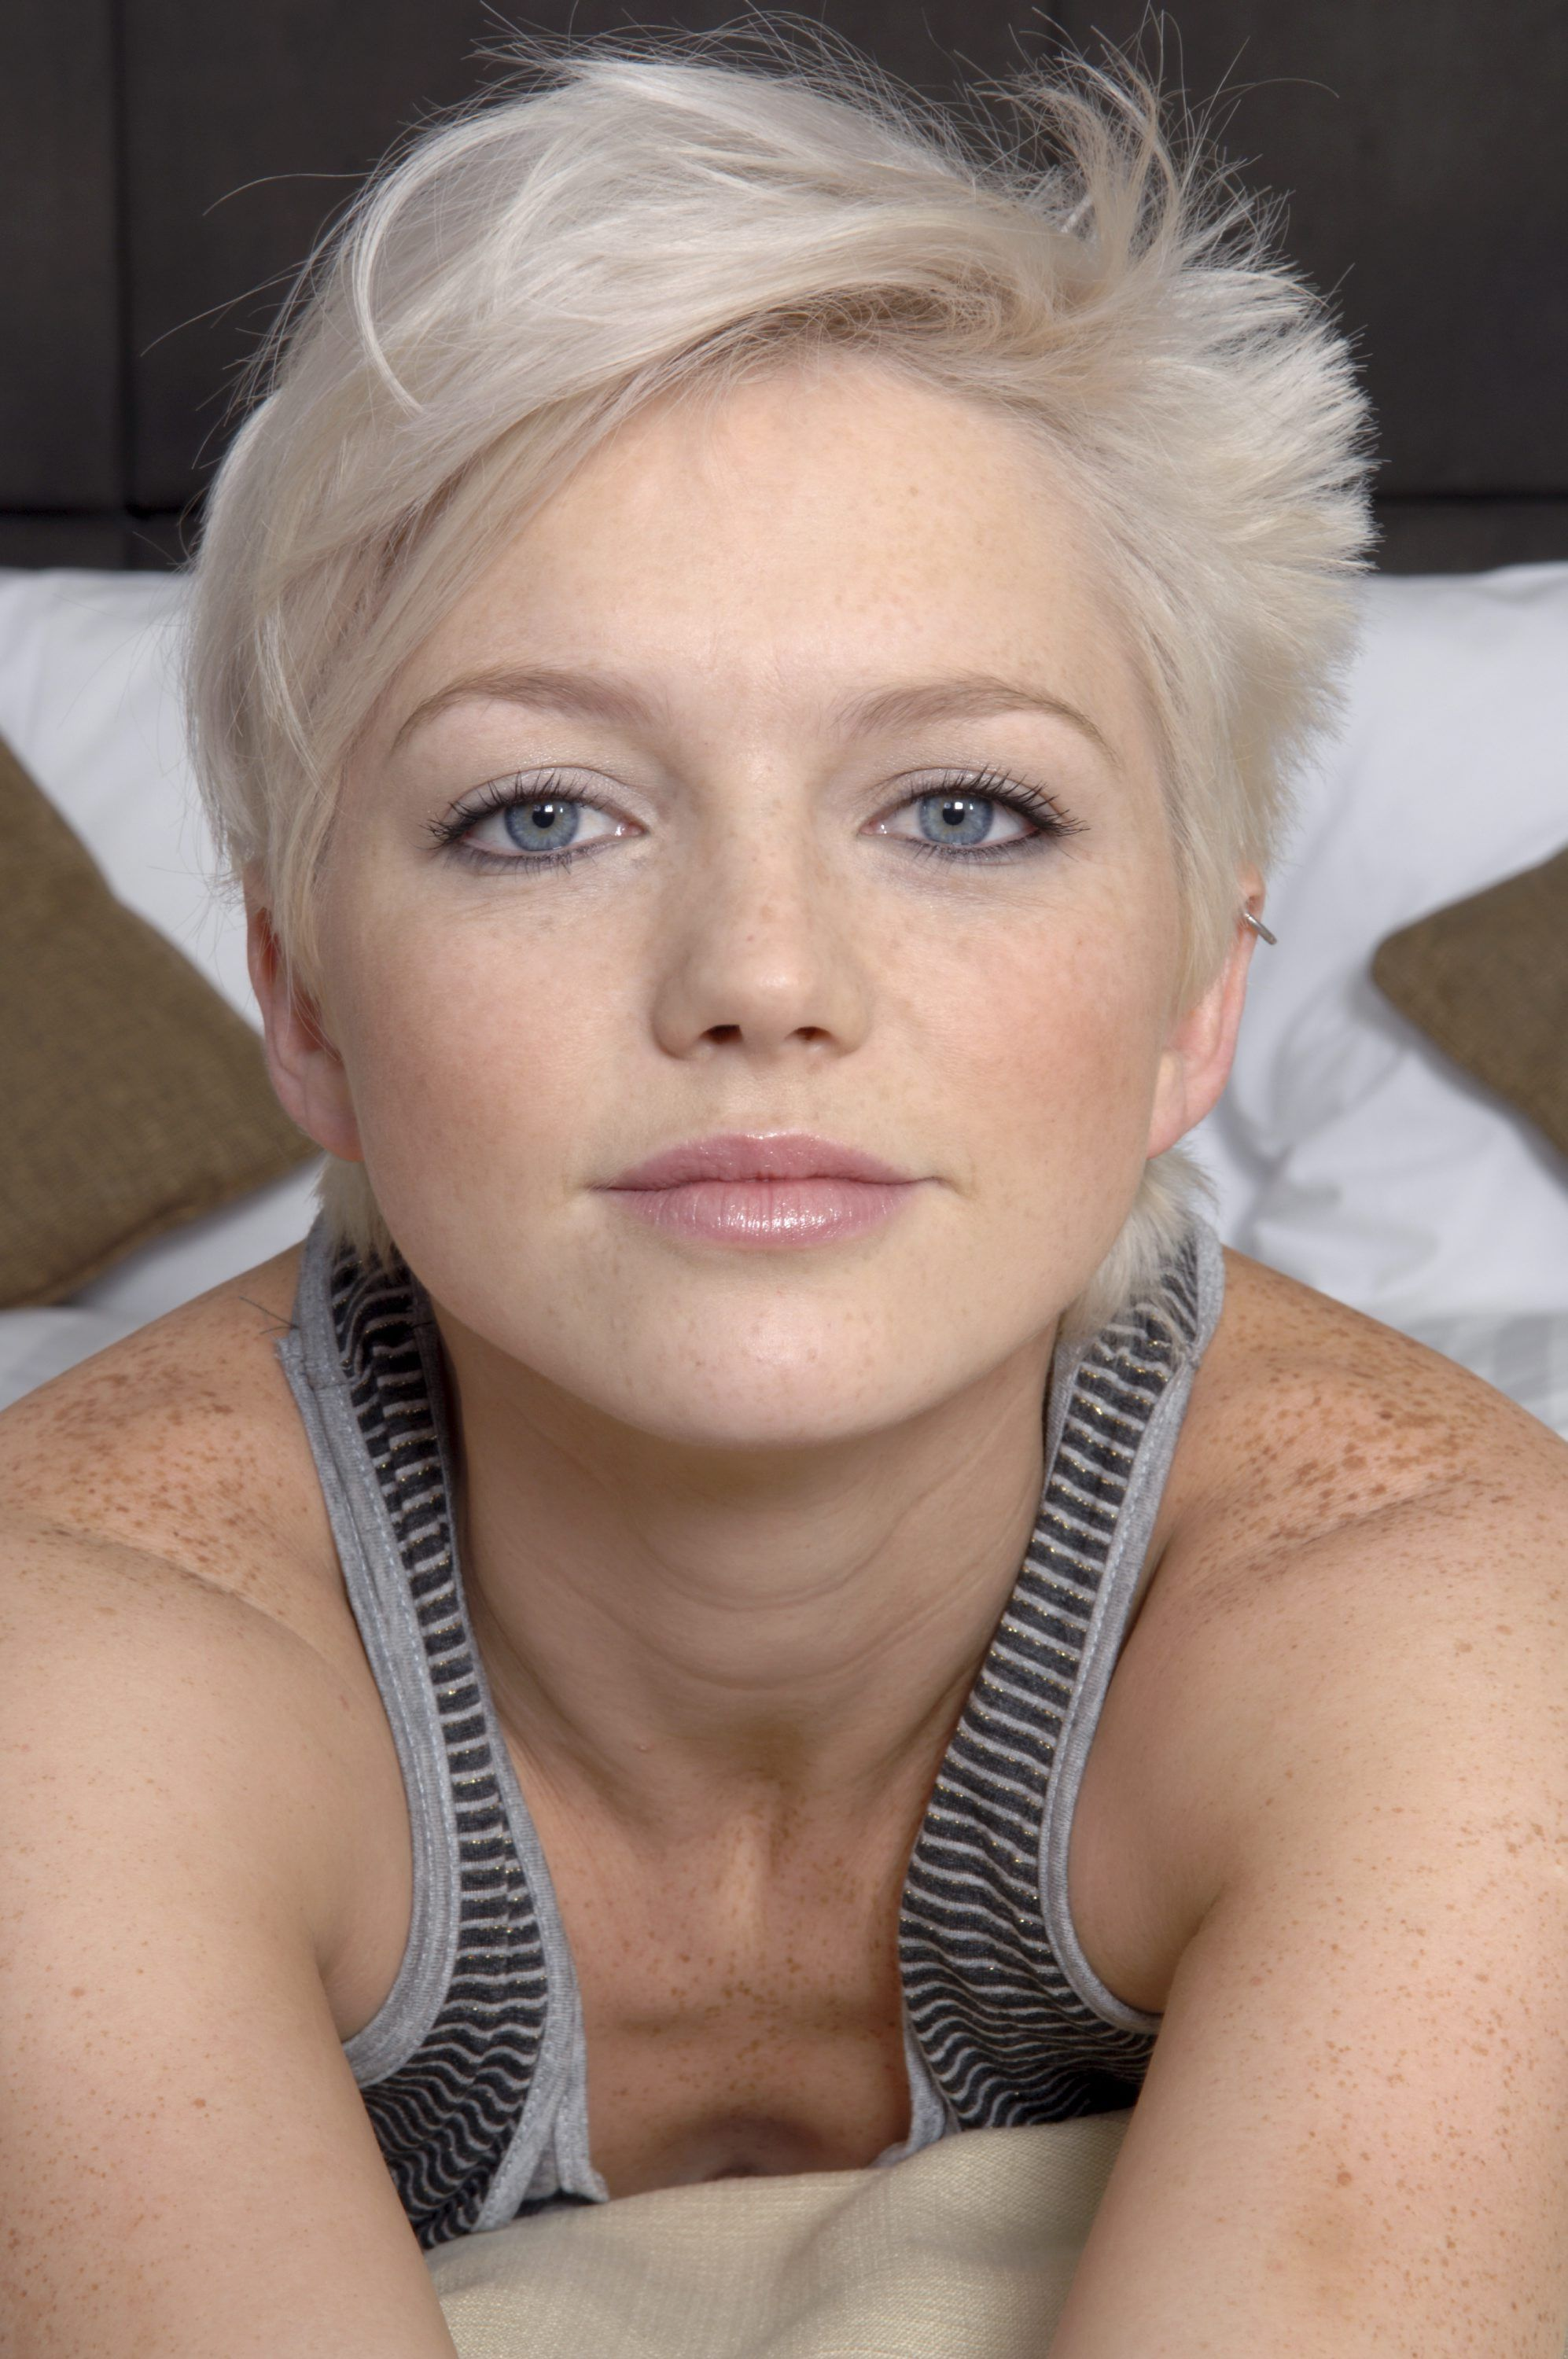 Hannah spearritt nude Nude Photos